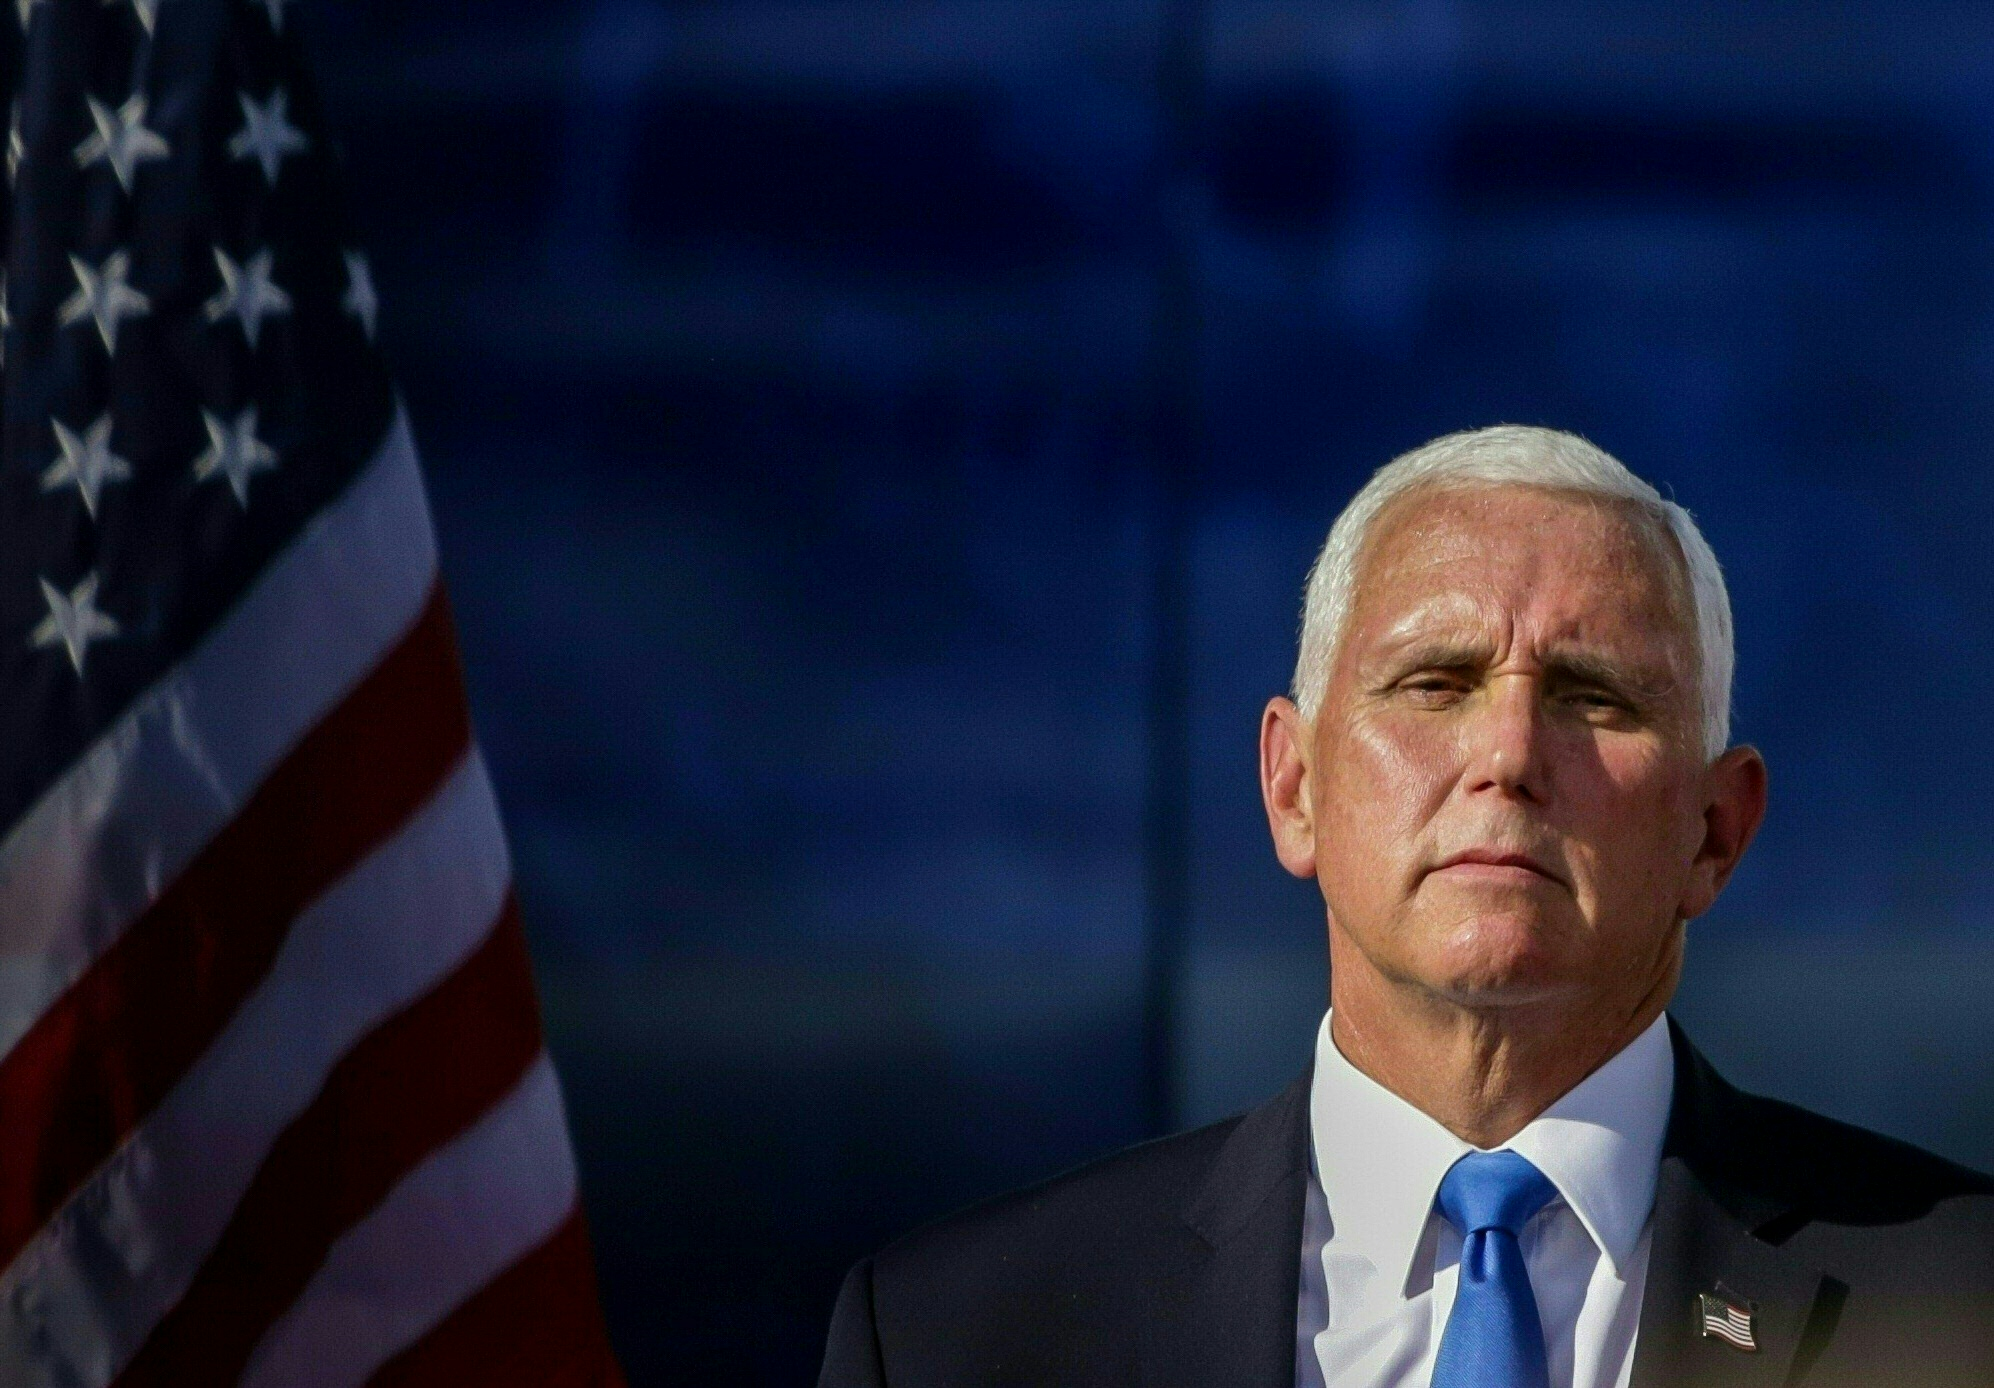 Pence Is Light Pushing Trump's Tall Lie